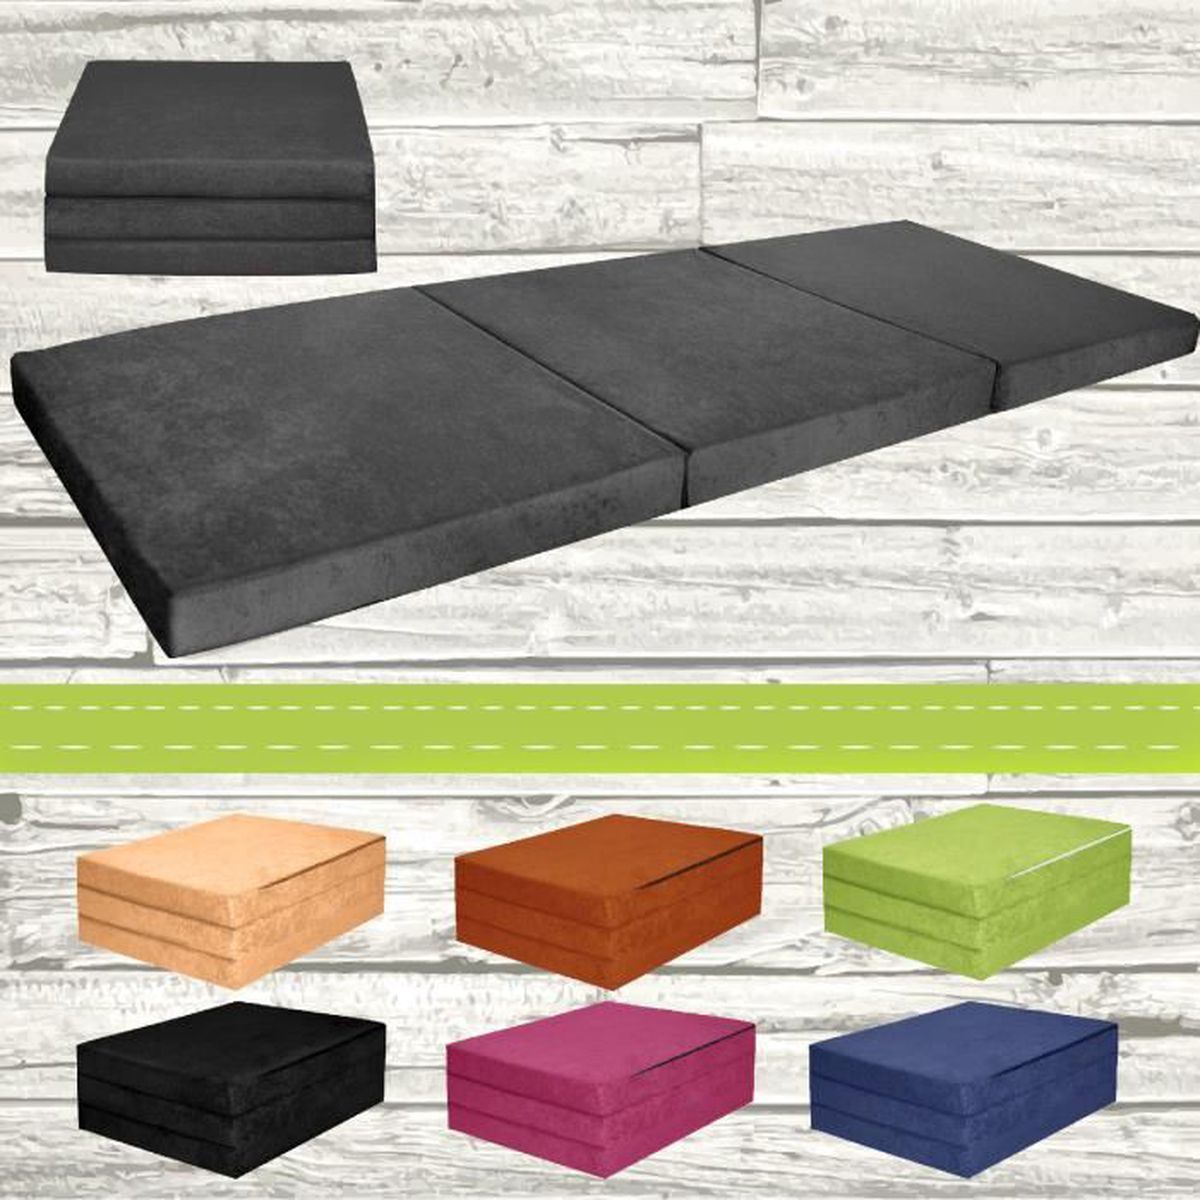 matelas d appoint mousse achat vente matelas d appoint mousse pas cher cdiscount. Black Bedroom Furniture Sets. Home Design Ideas